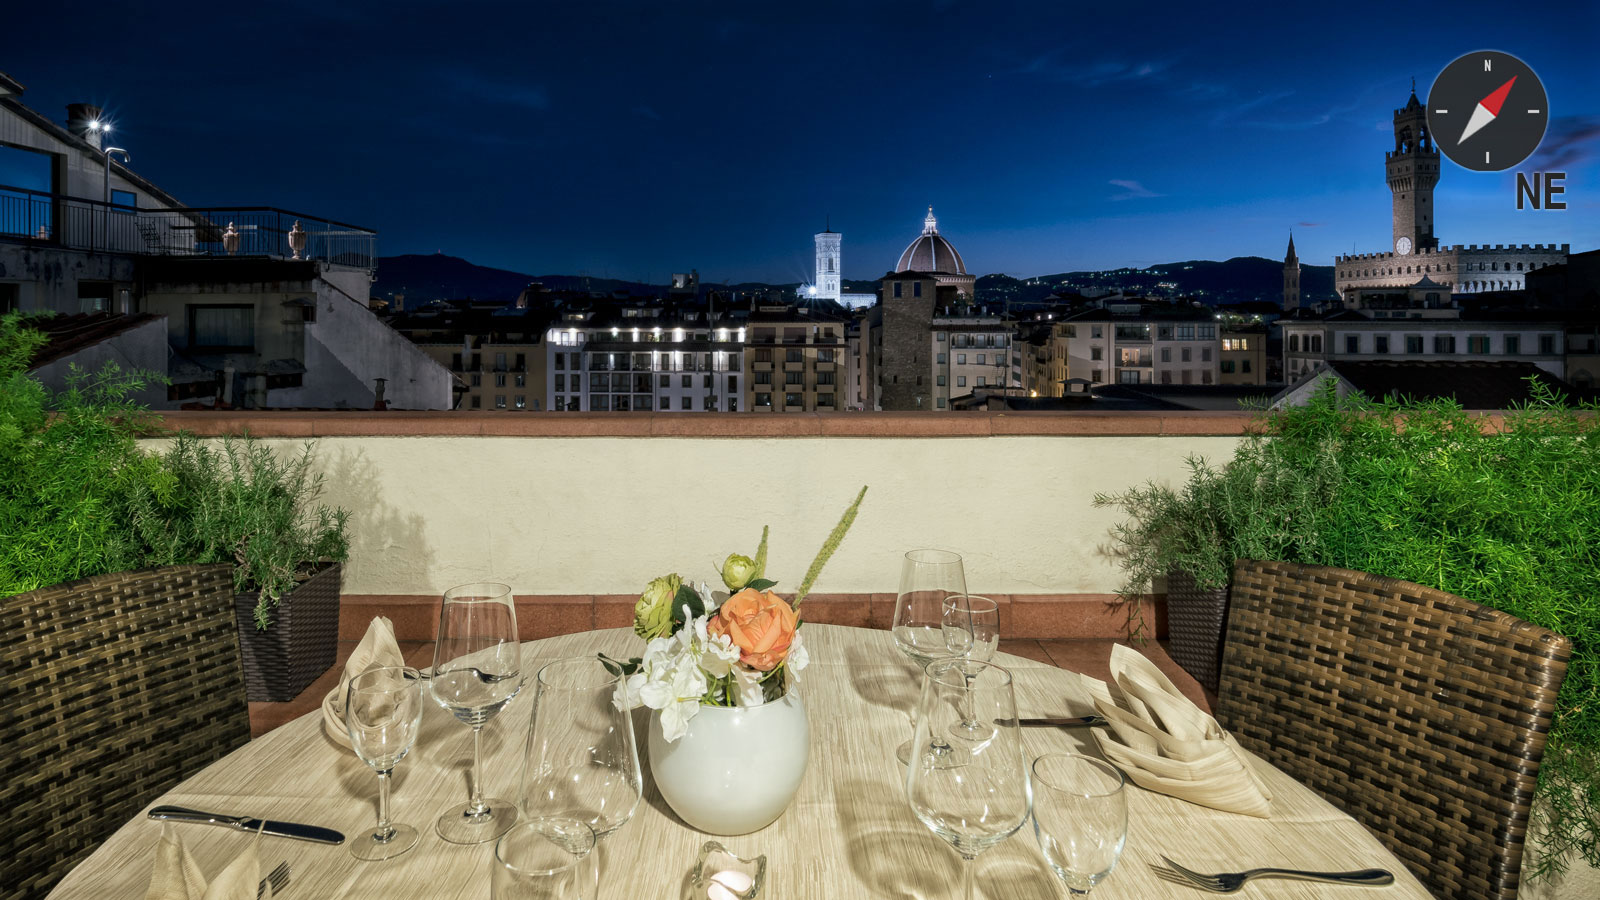 Toit Terrasse Florence Florence Rooftop Wine Bar And Restaurant With Best View Hotel